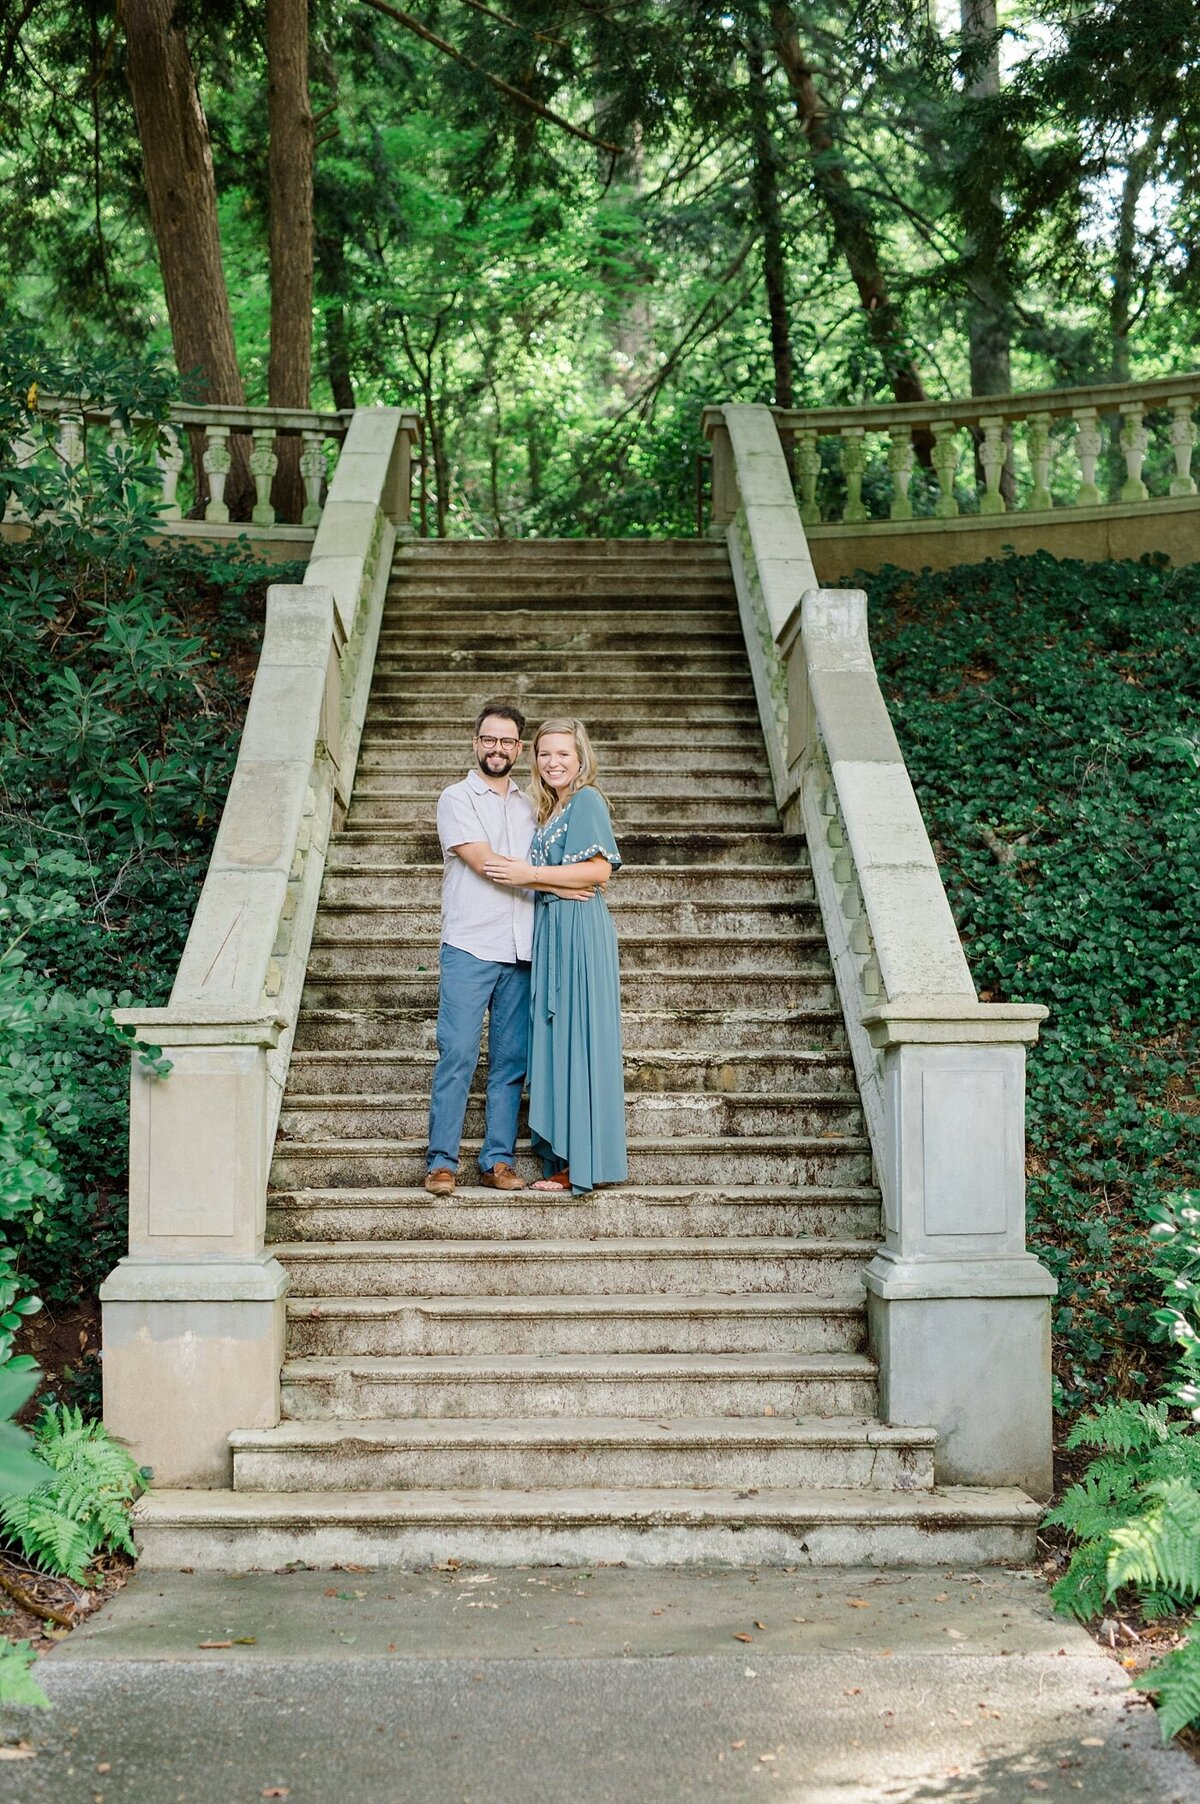 cator-woolford-gardens-engagement-wedding-photographer-laura-barnes-photo-shackelford-05